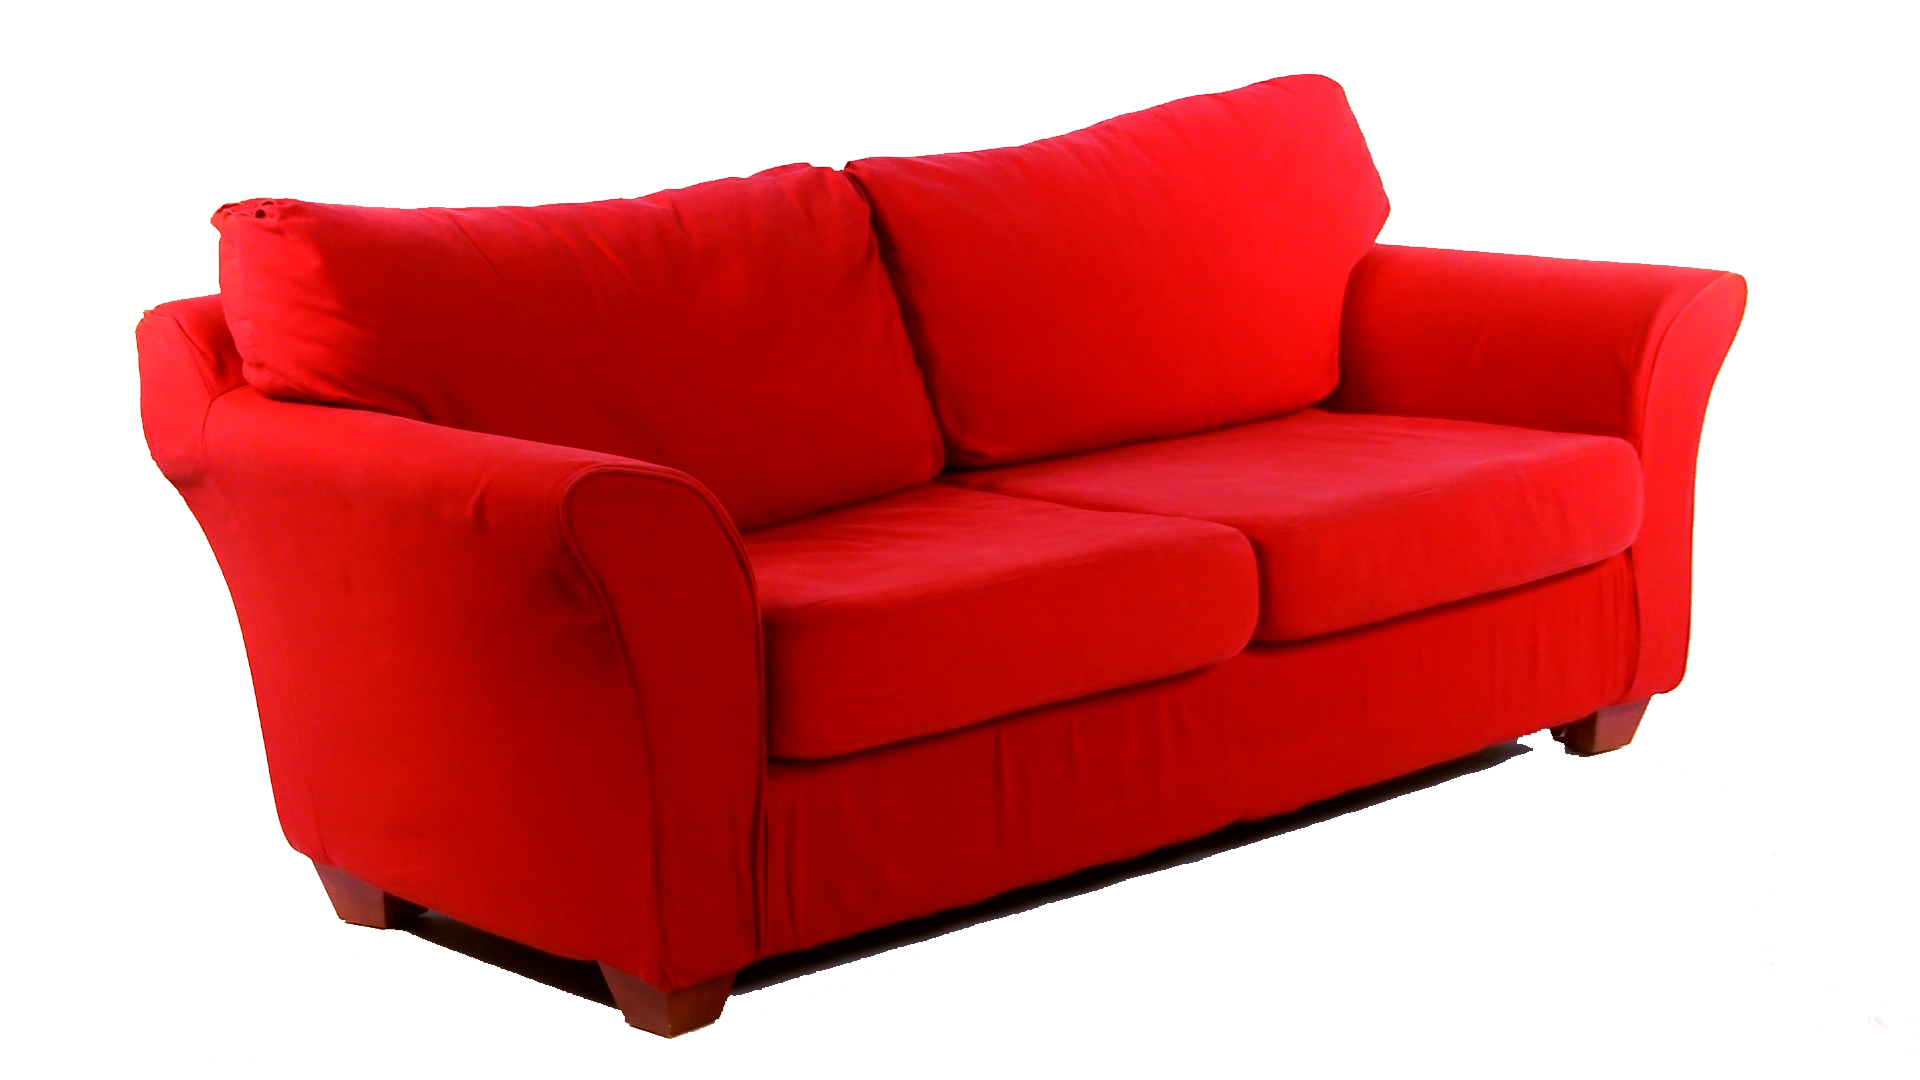 Red couch png. Campaign kicking off in